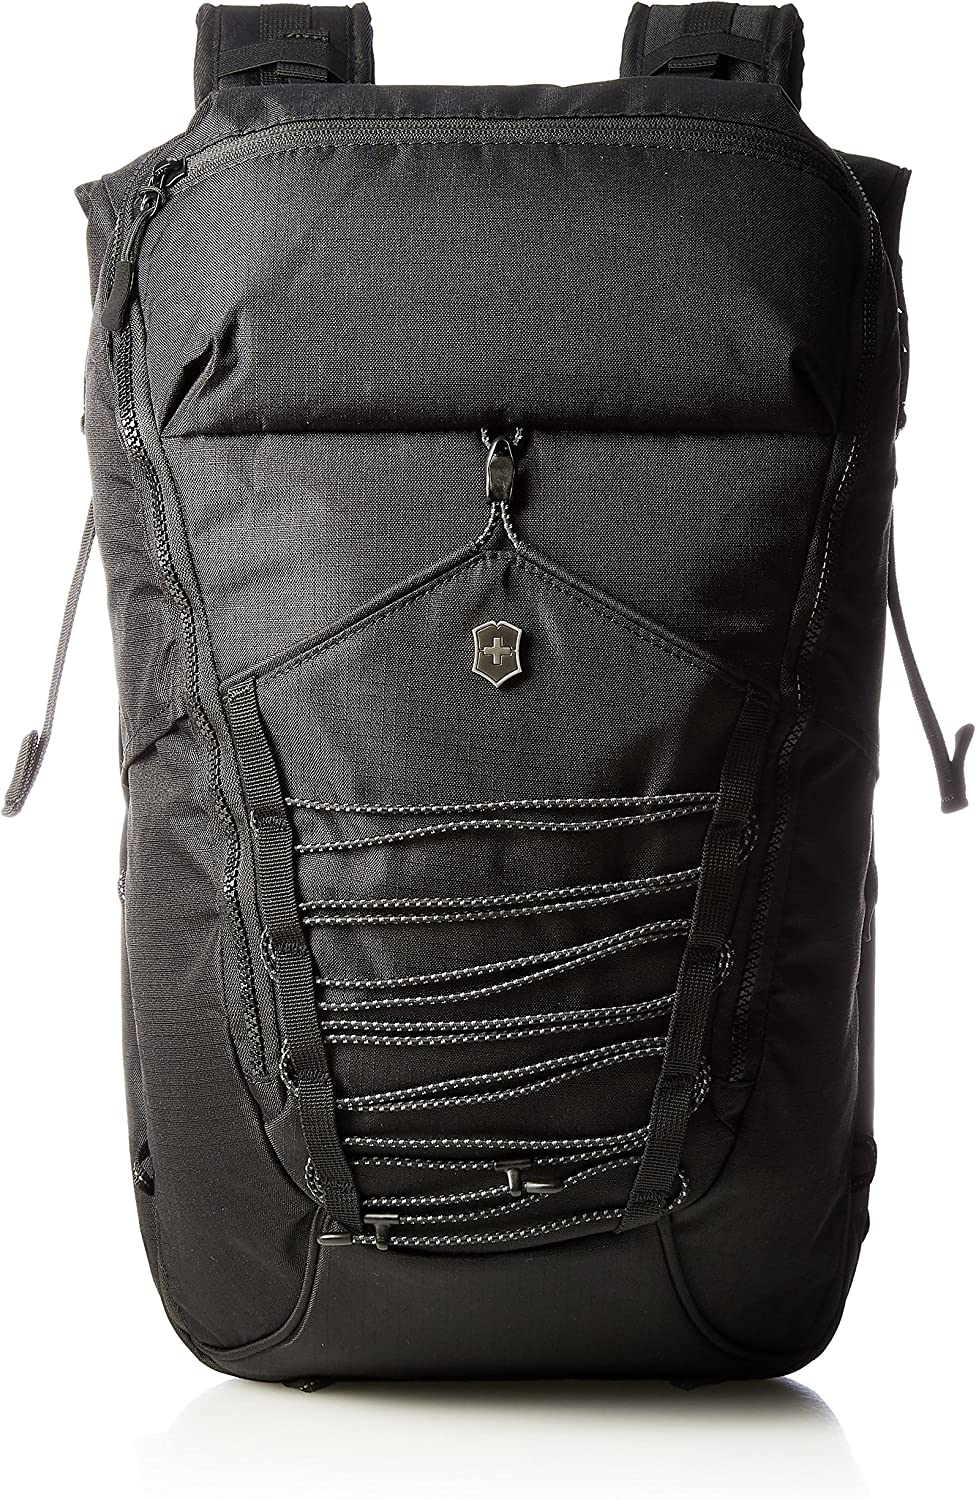 Victorinox Altmont Active Deluxe Rolltop Laptop Backpack, Black, 18.9-inch